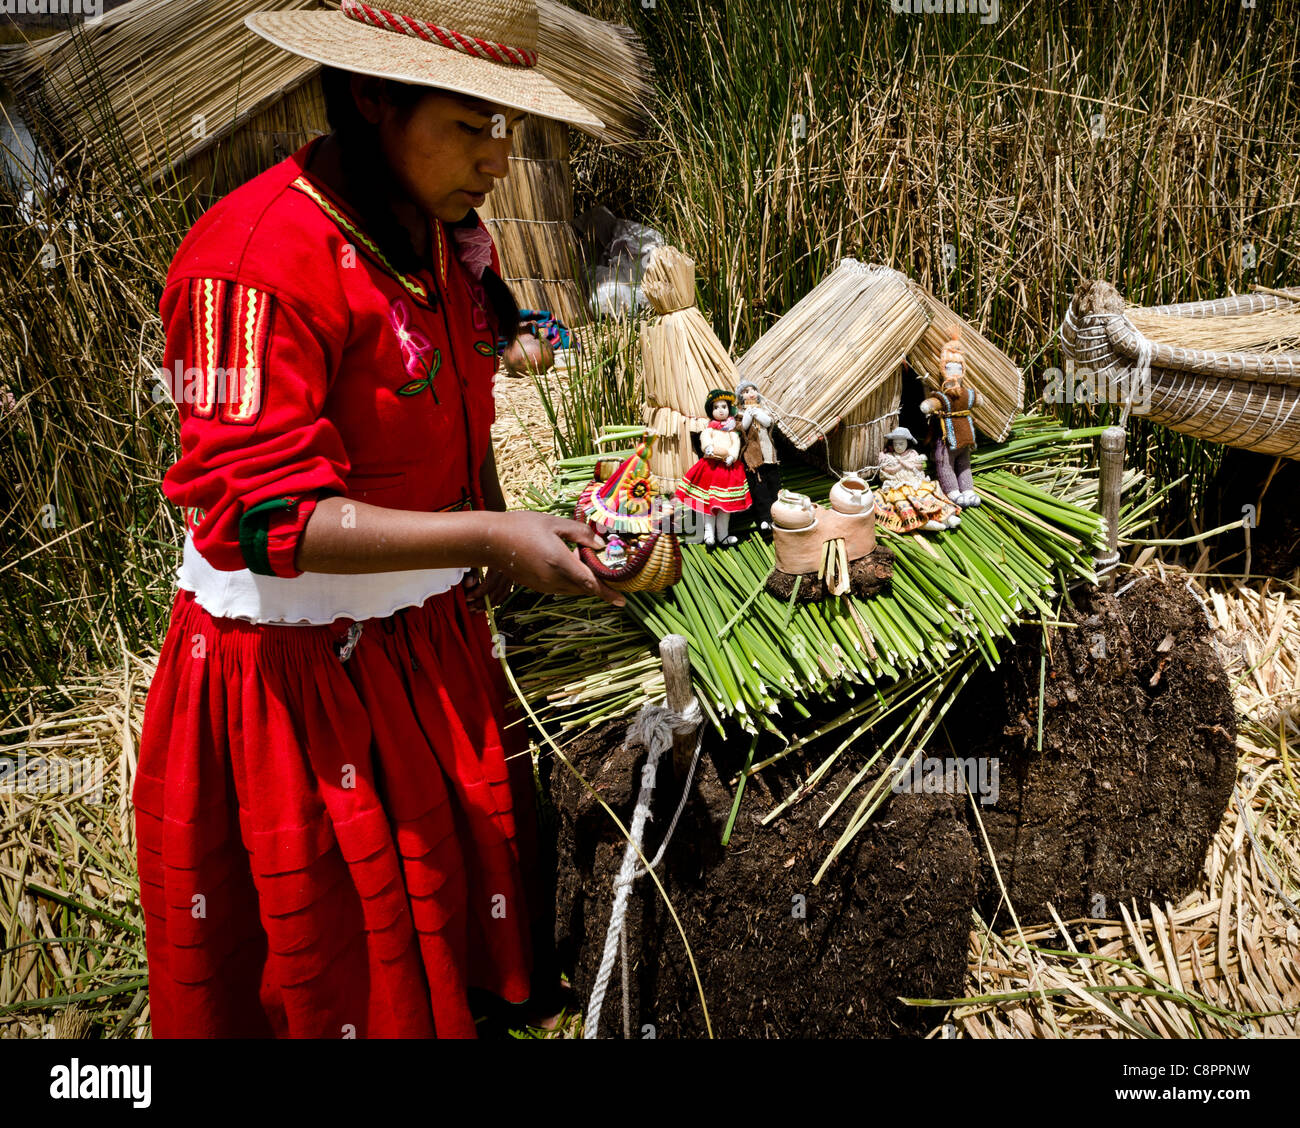 Woman wearing a traditional costume selling handcrafts Uros islands Titicaca lake Puno region Peru - Stock Image